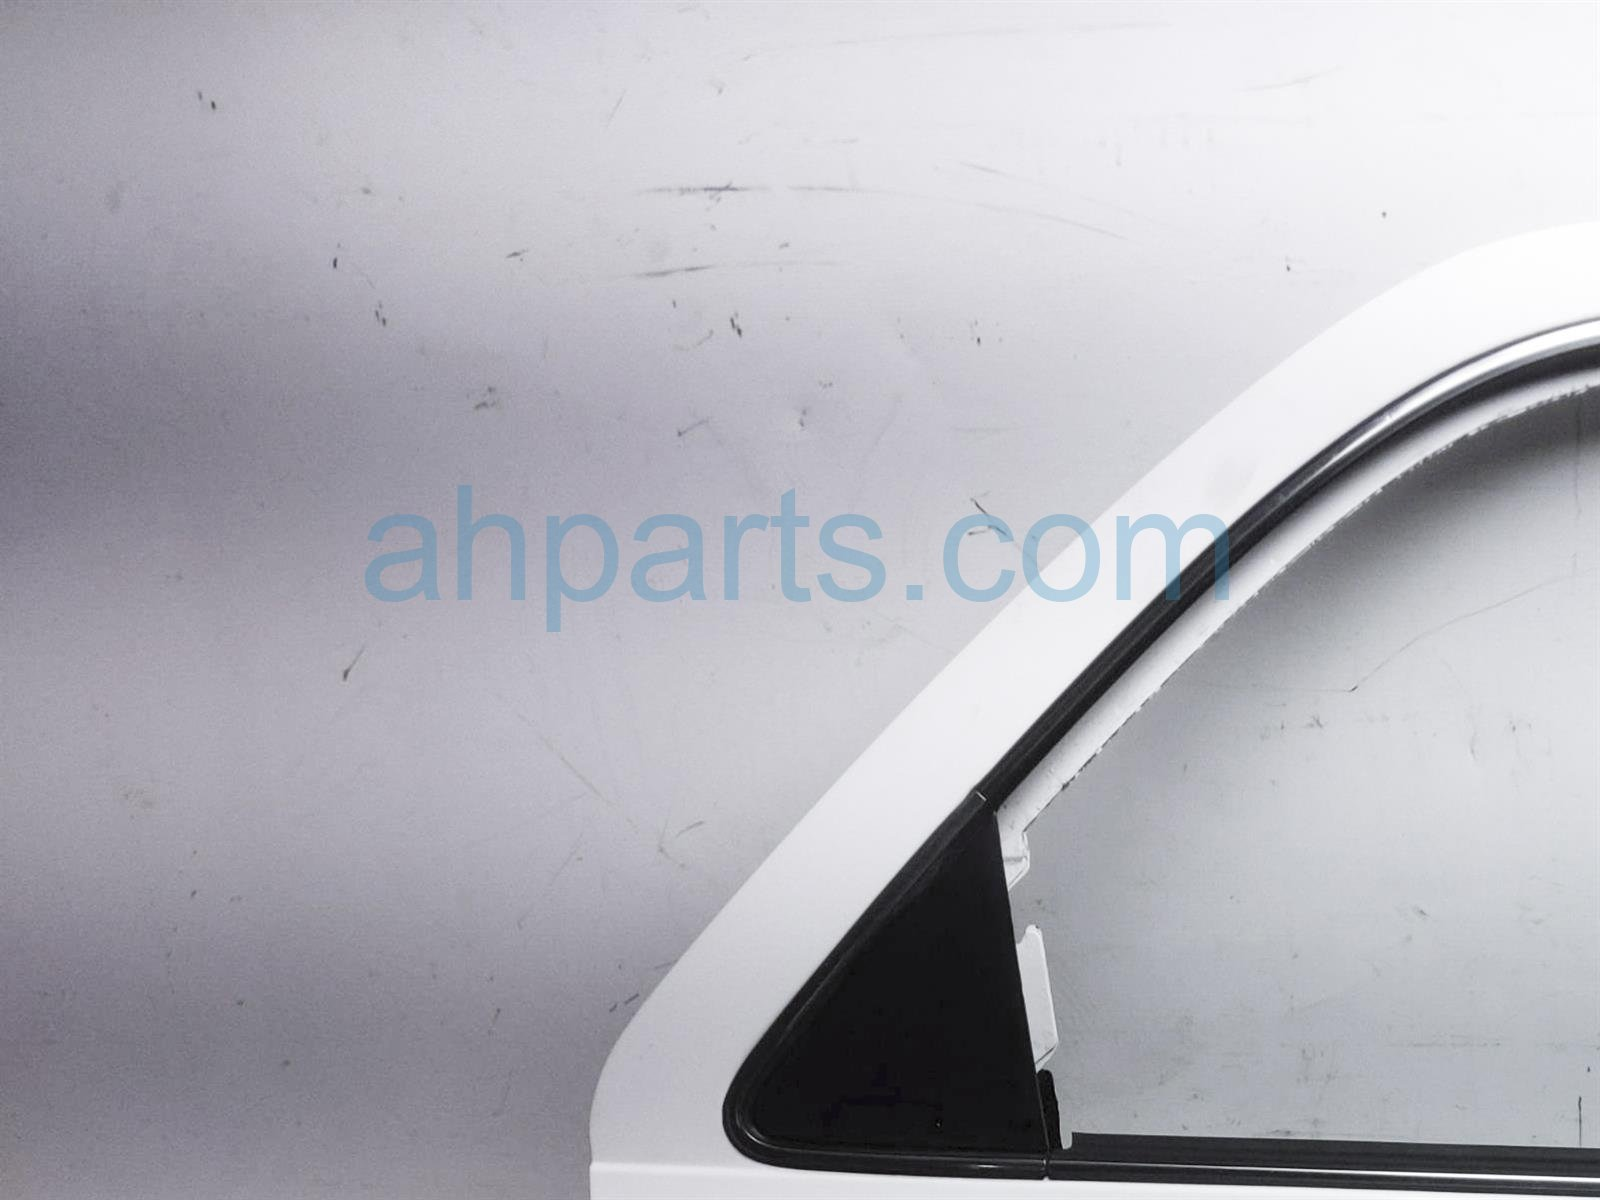 2001 Toyota Camry Rear Passenger Door Shell   White 67003 AA020 Replacement